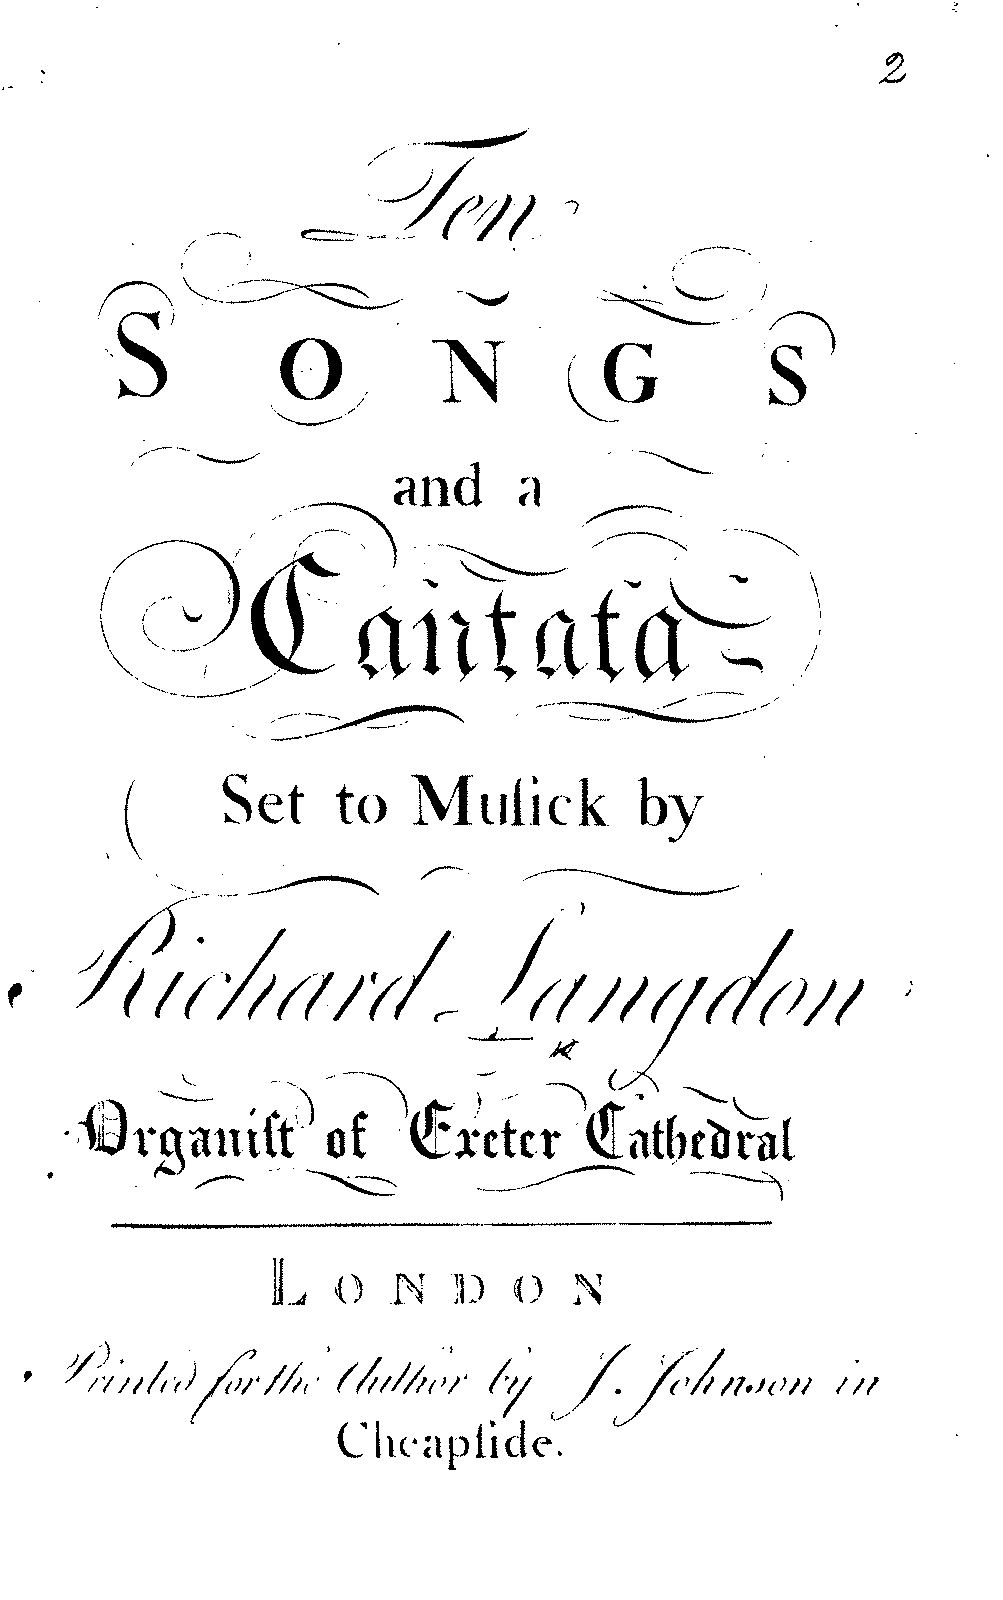 PMLP140665-richard langdon 10 songs and cantata 1759.pdf